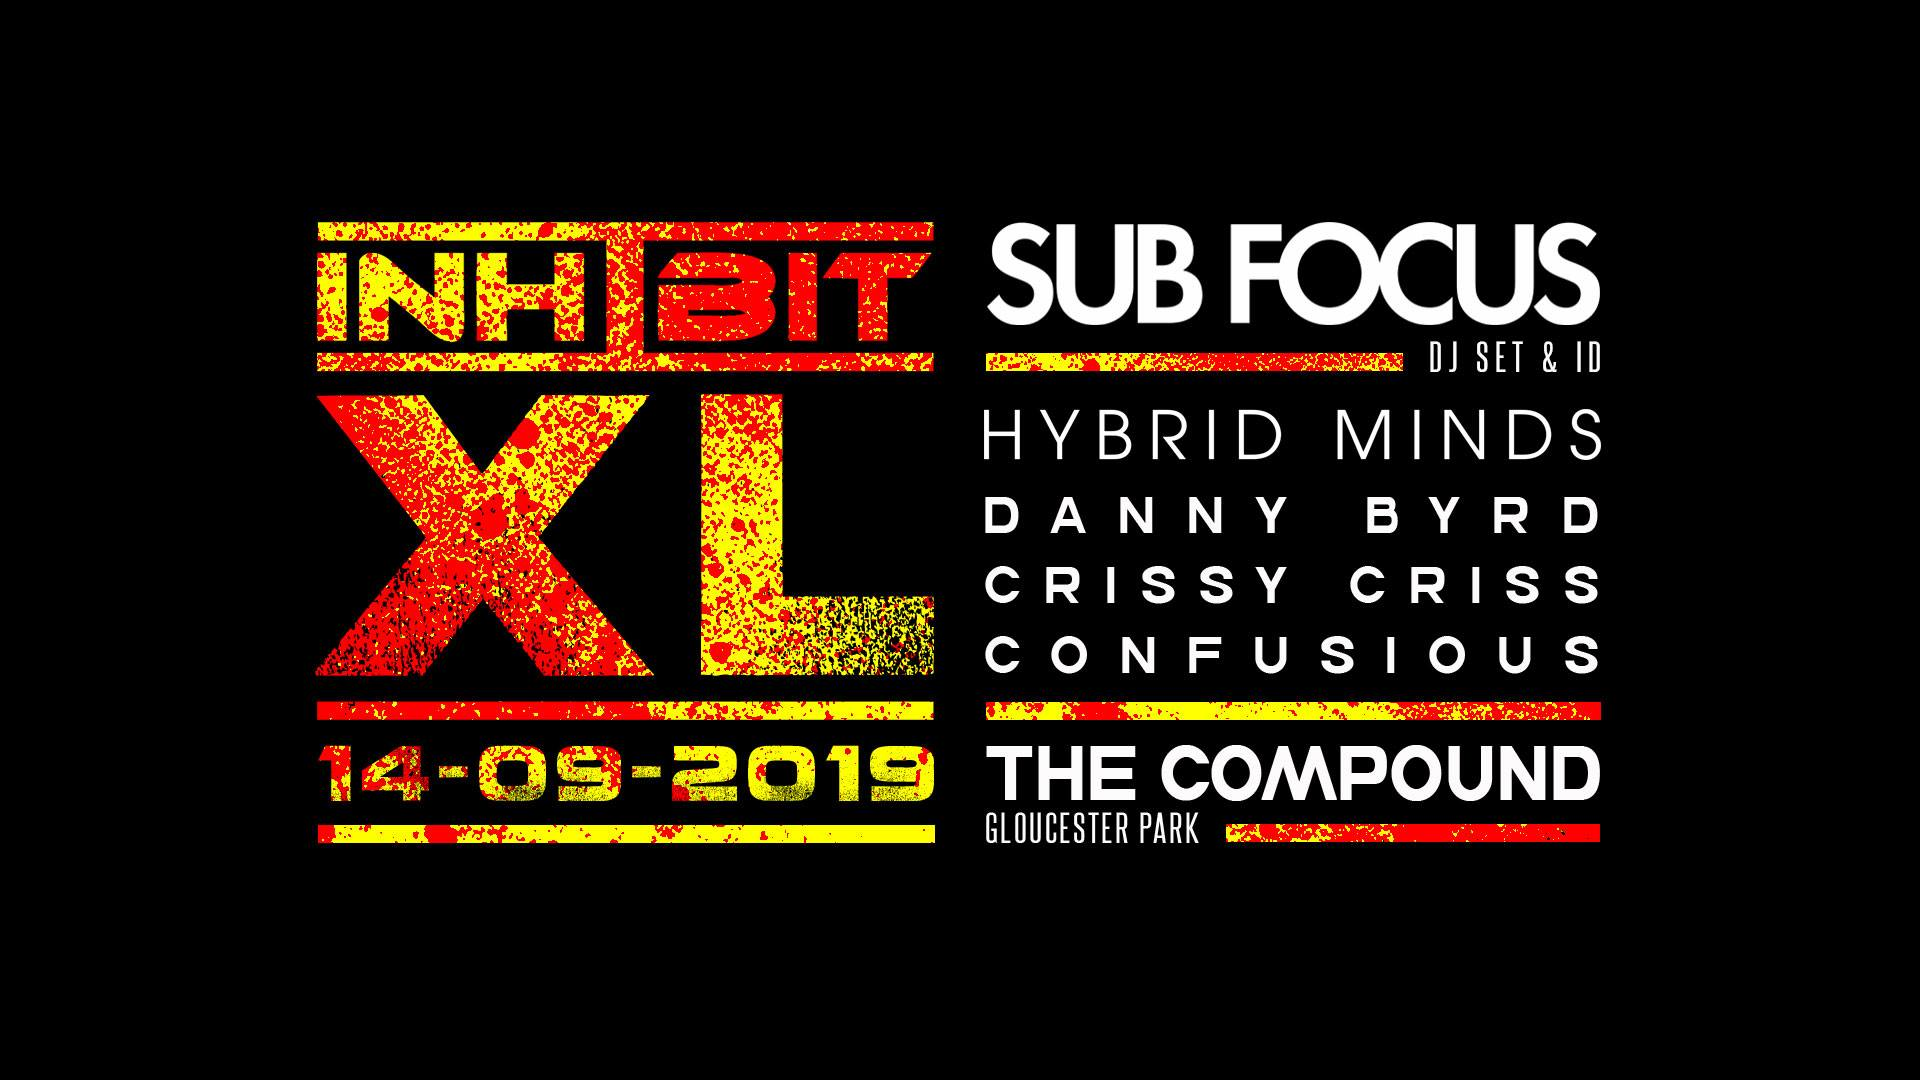 inhibit-xl-perth-2019-sub-focus-oz-edm